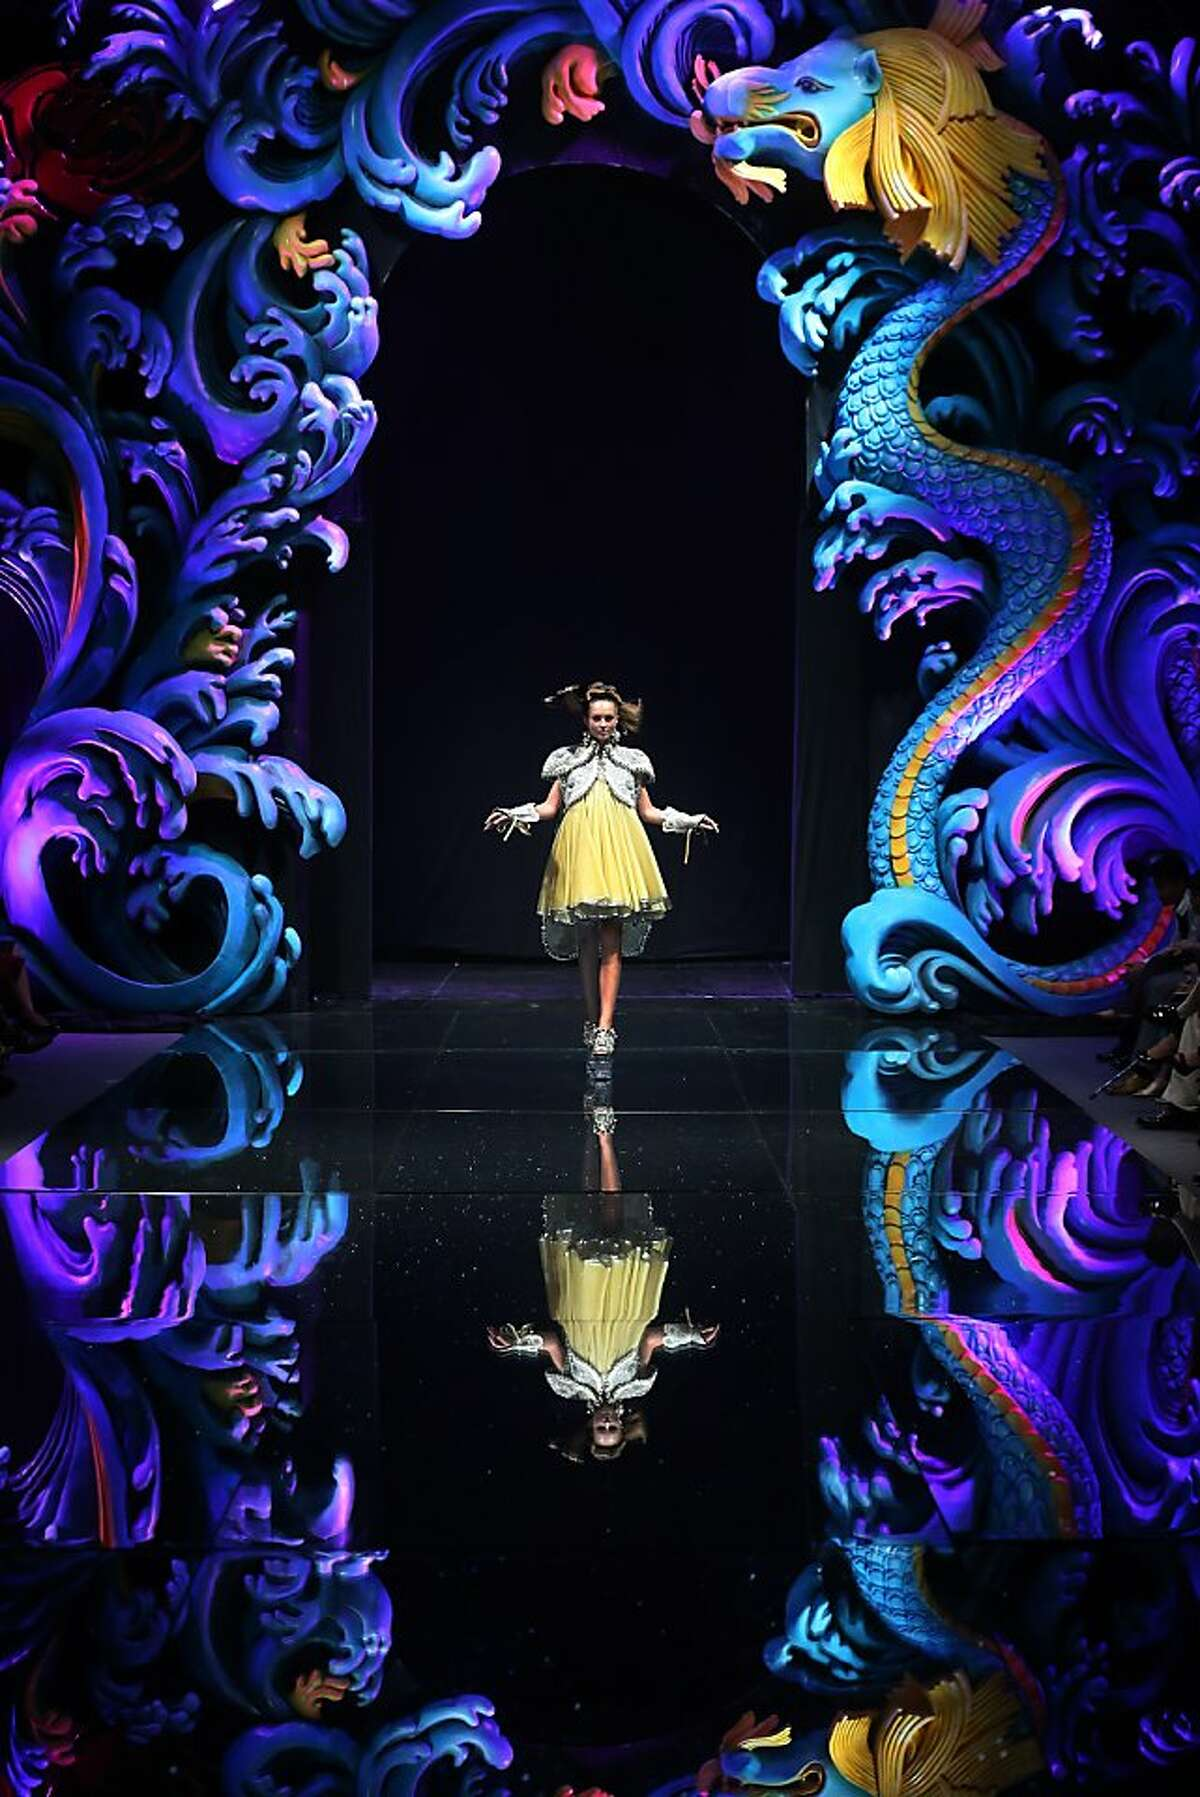 A model showcases a creation by Chinese designer Guo Pei on Tuesday Nov. 27, 2012, in Singapore during the Asian Couture 2012 Singapore fashion show. (AP Photo/Wong Maye-E)